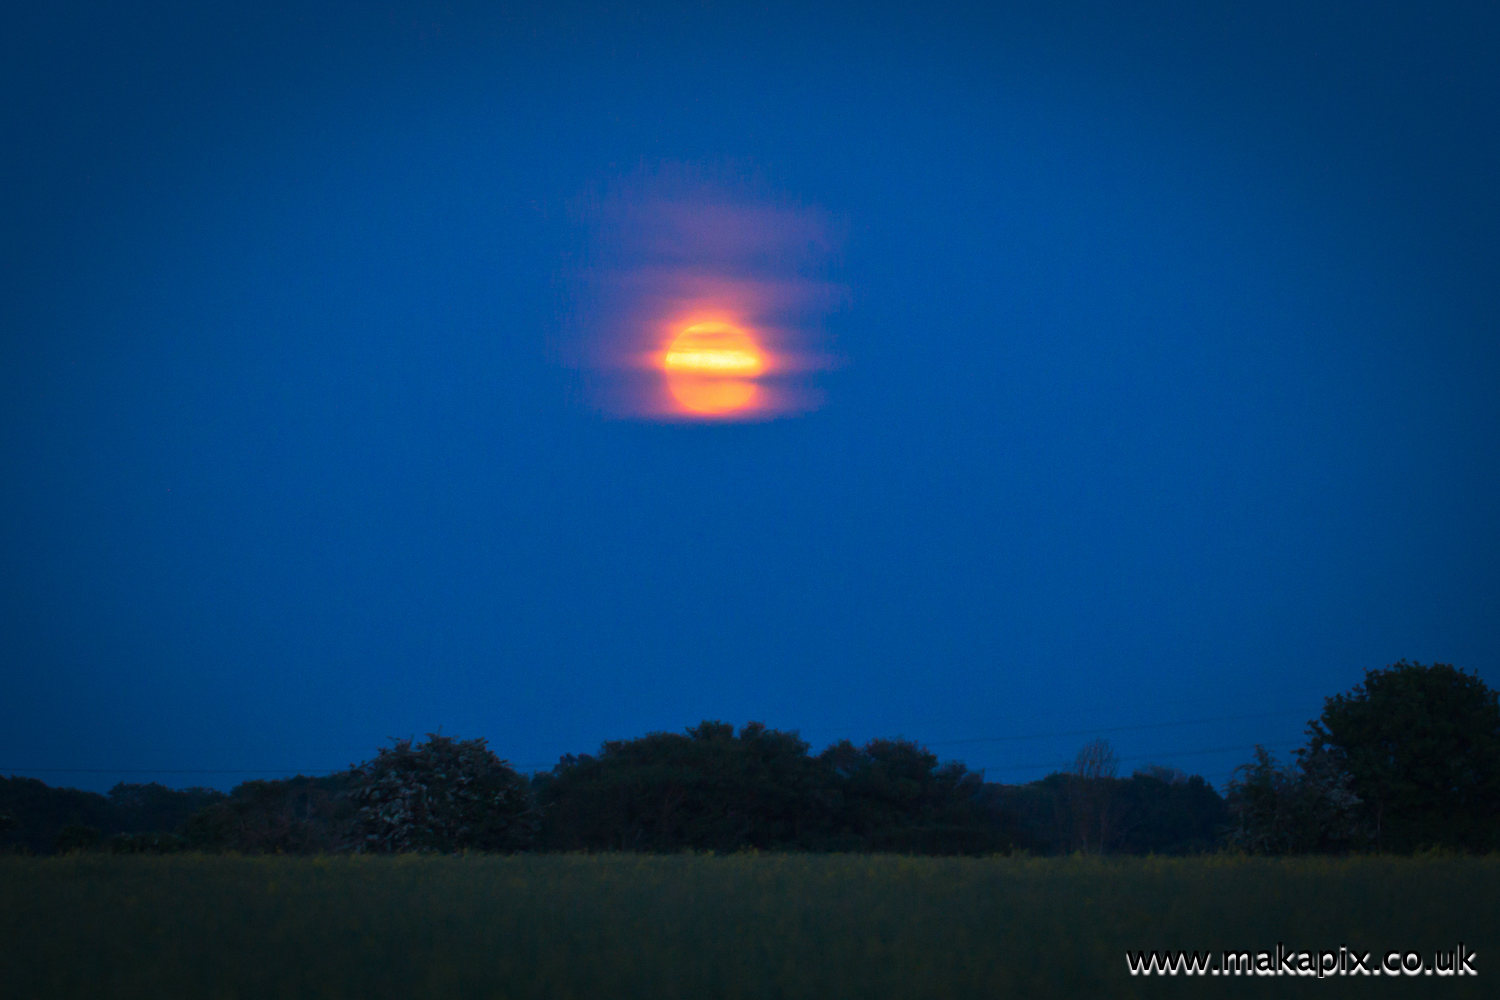 Moonrise in Upminster, Essex, England